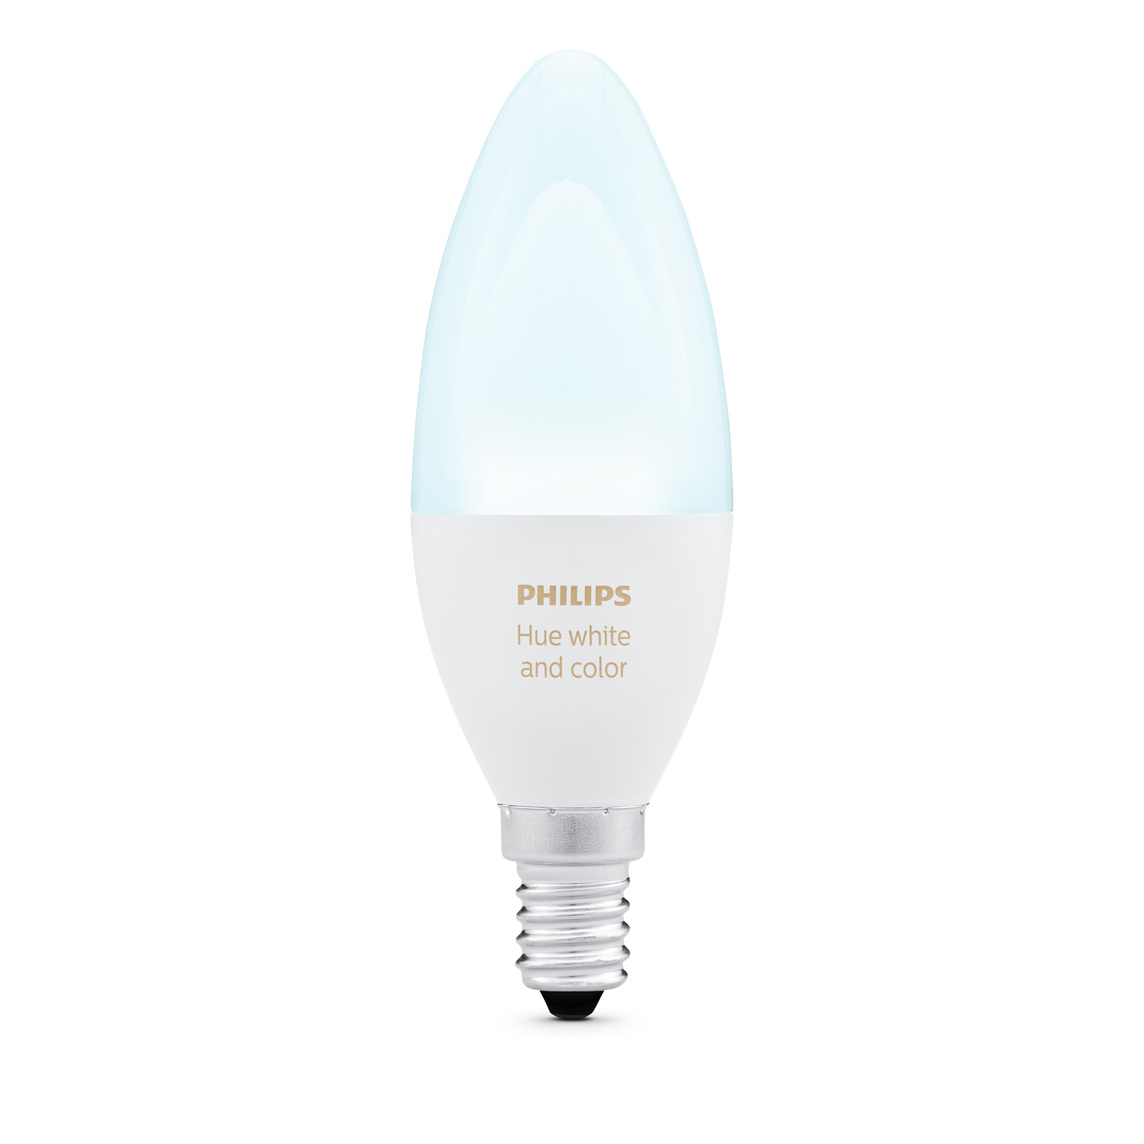 Philips Hue Ambiance White And Colour Extension Bulb E14